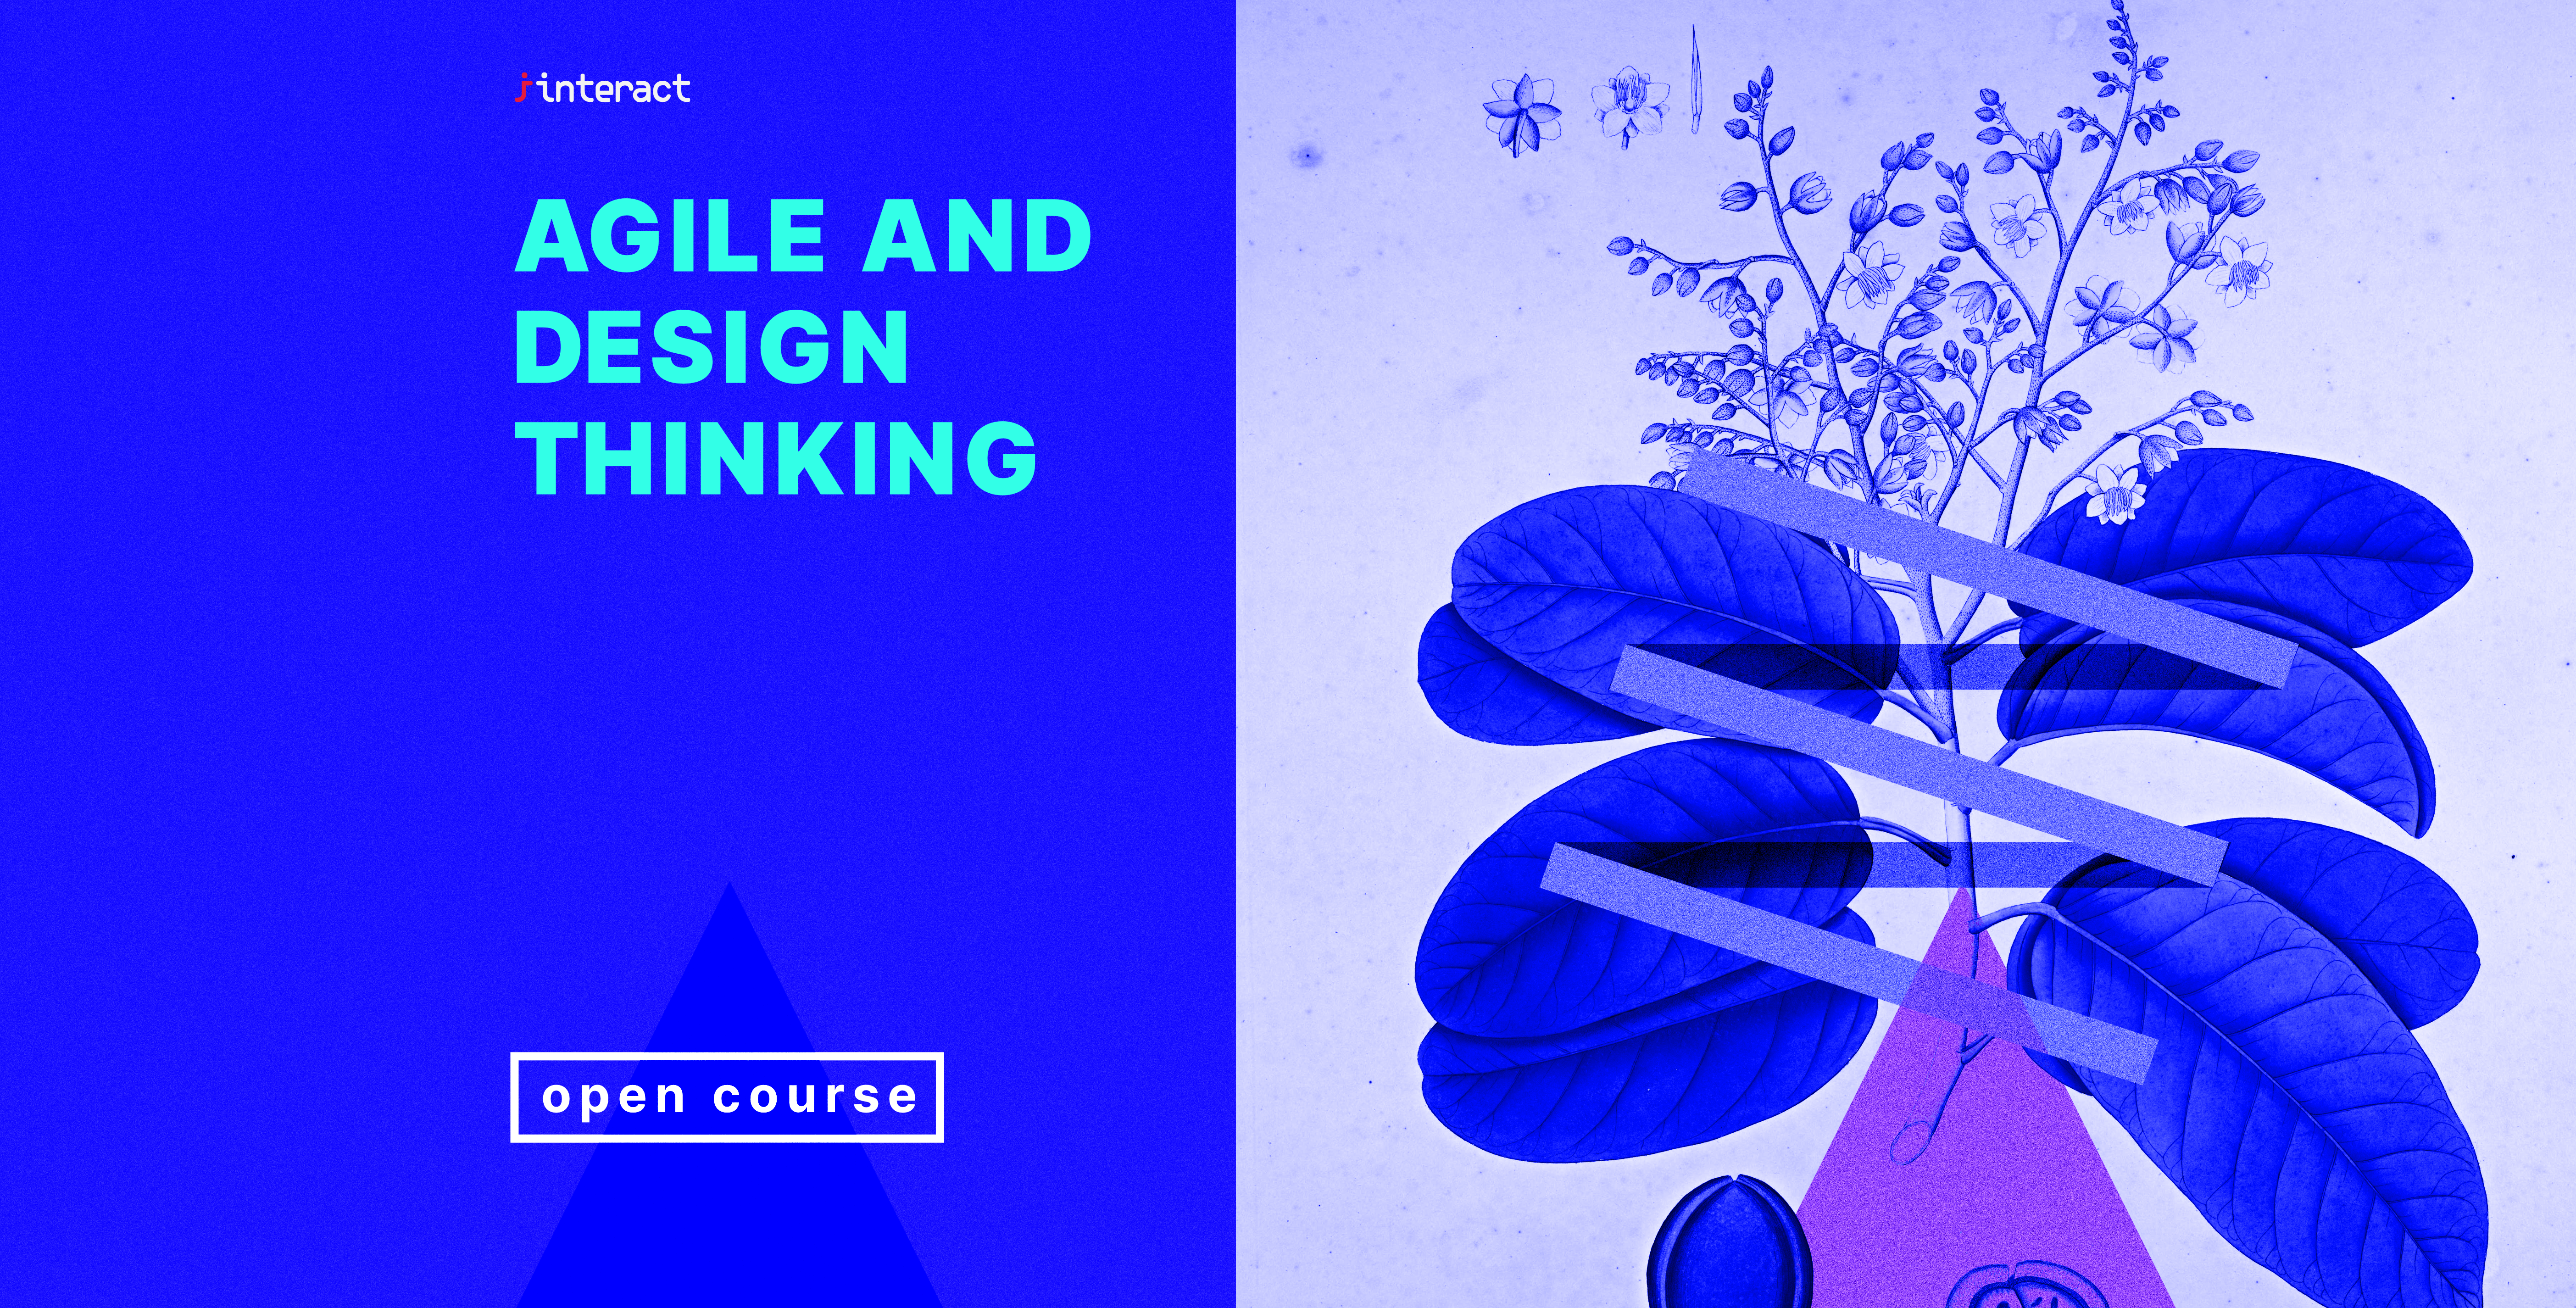 Interact will be holding an Agile and Design Thinking Online Open Course